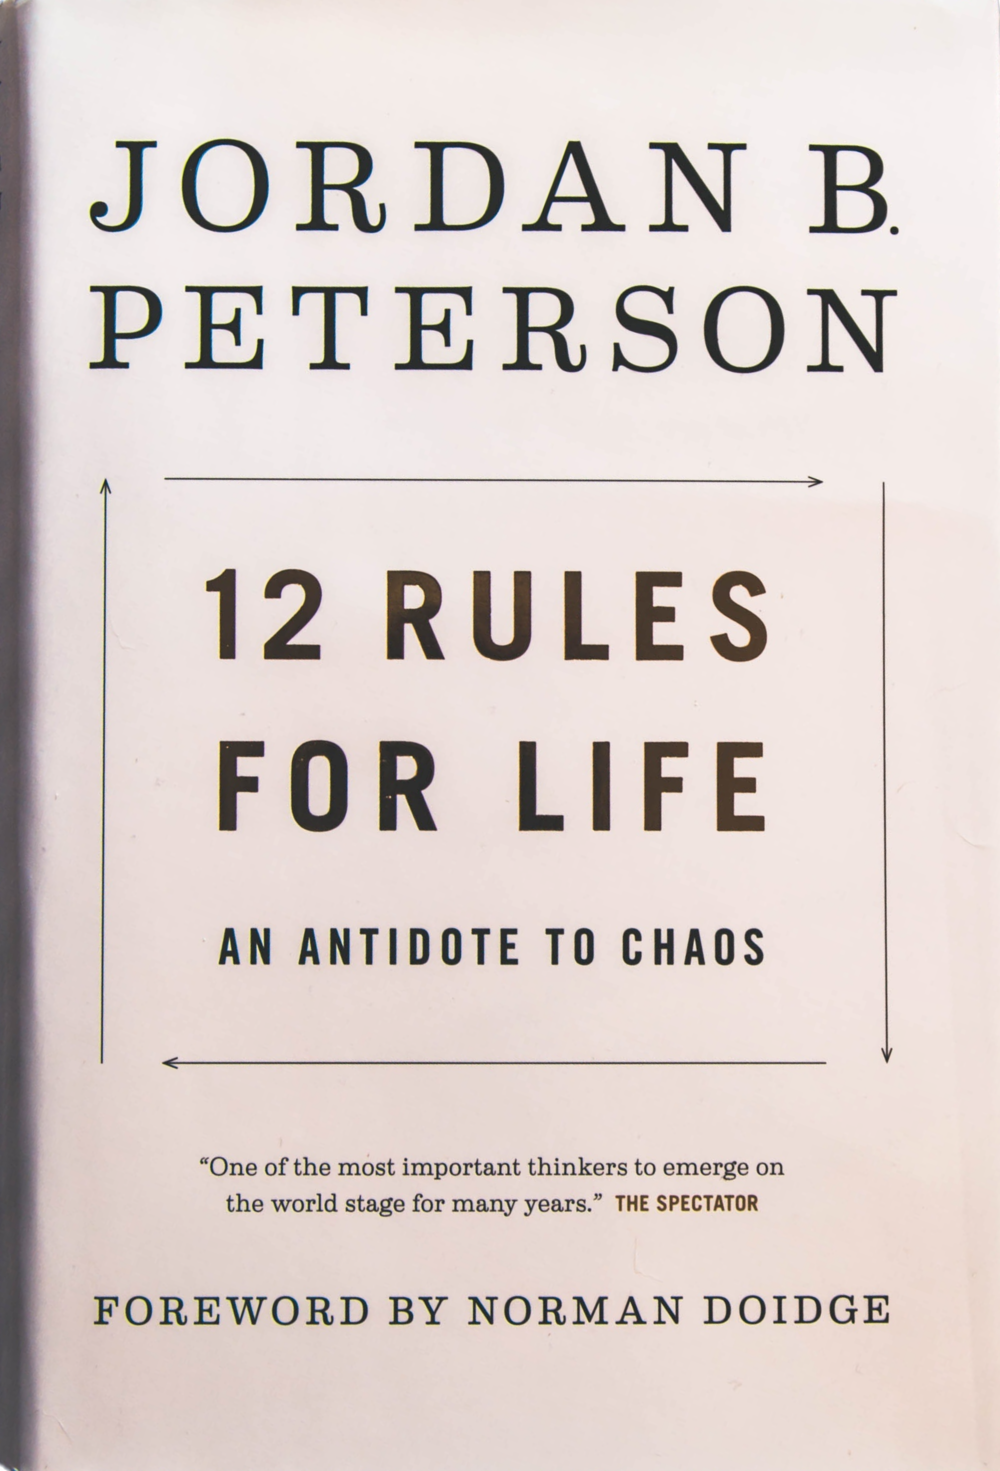 12 rules for life jordan b peterson book brown textile by Travis Rupert / cropped from original